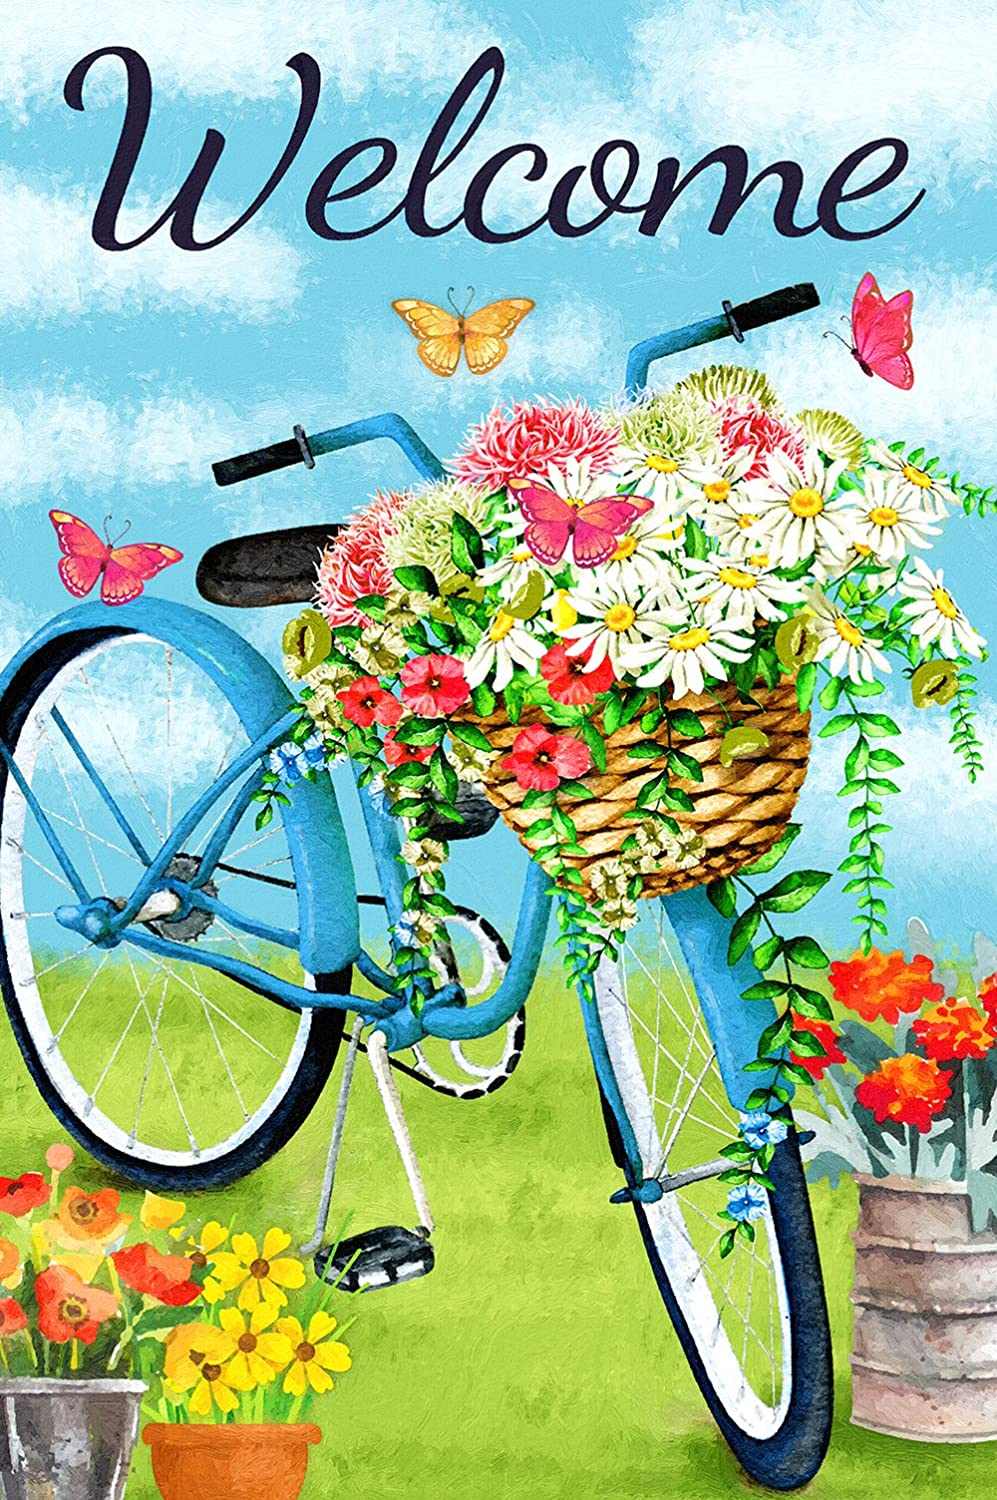 "Texupday Welcome Blue Bicycle Flower Blooms Butterfly Decoration Spring Garden Flag Outdoor Yard Flag 12"" x 18"""